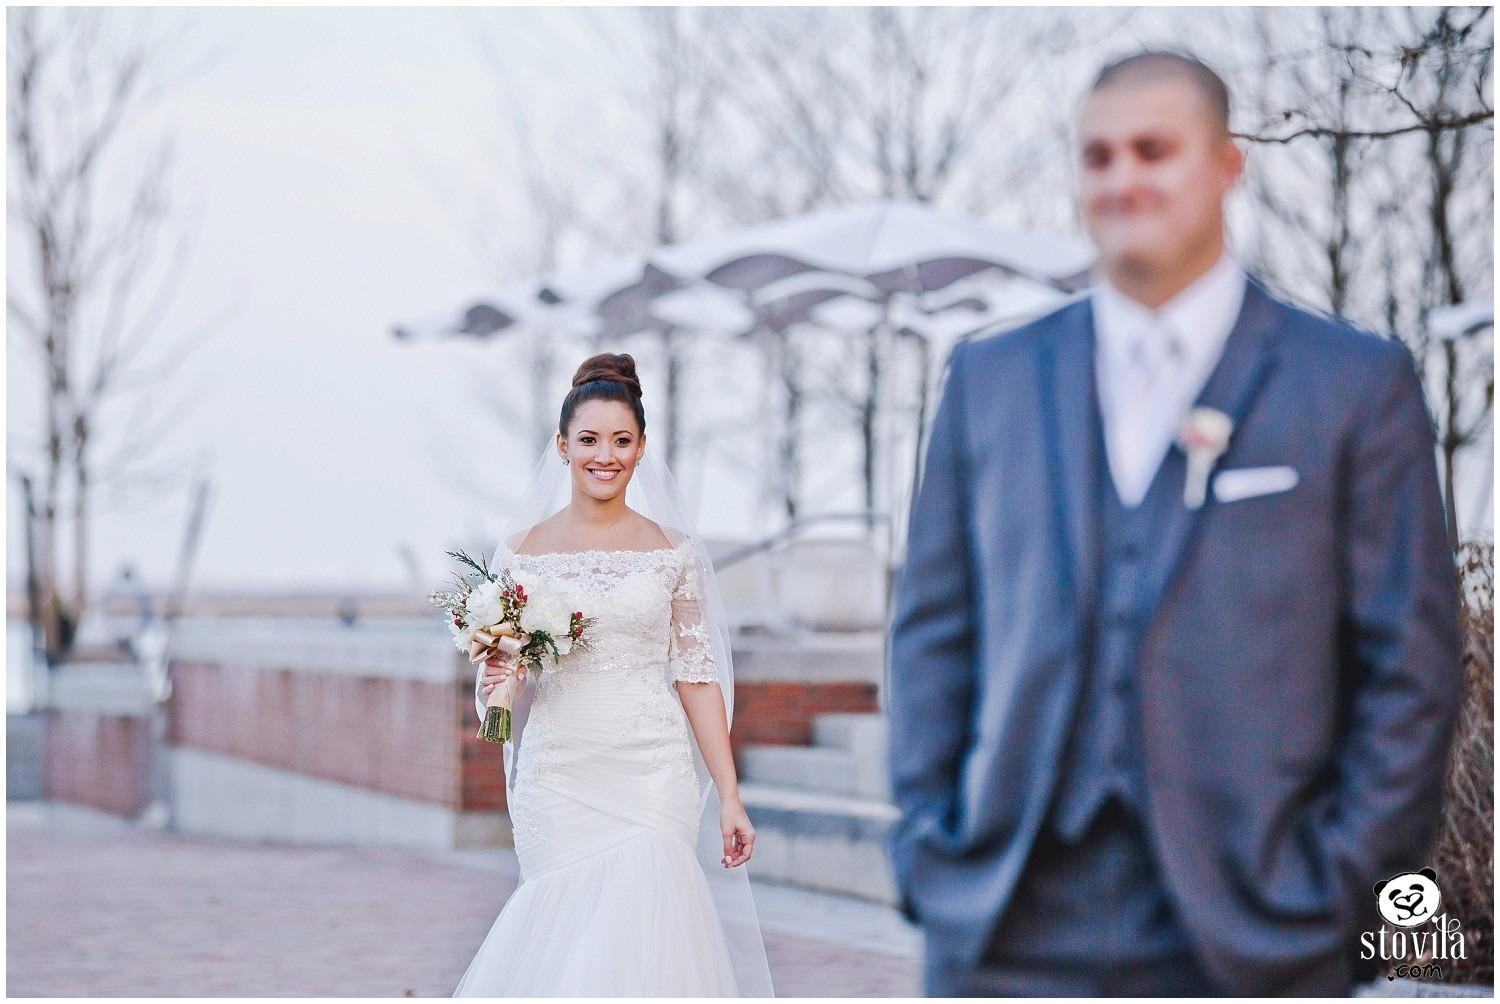 KB_Tirrell Room Wedding, Boston - Gate of Heaven Church - STOVILA Photography (11)